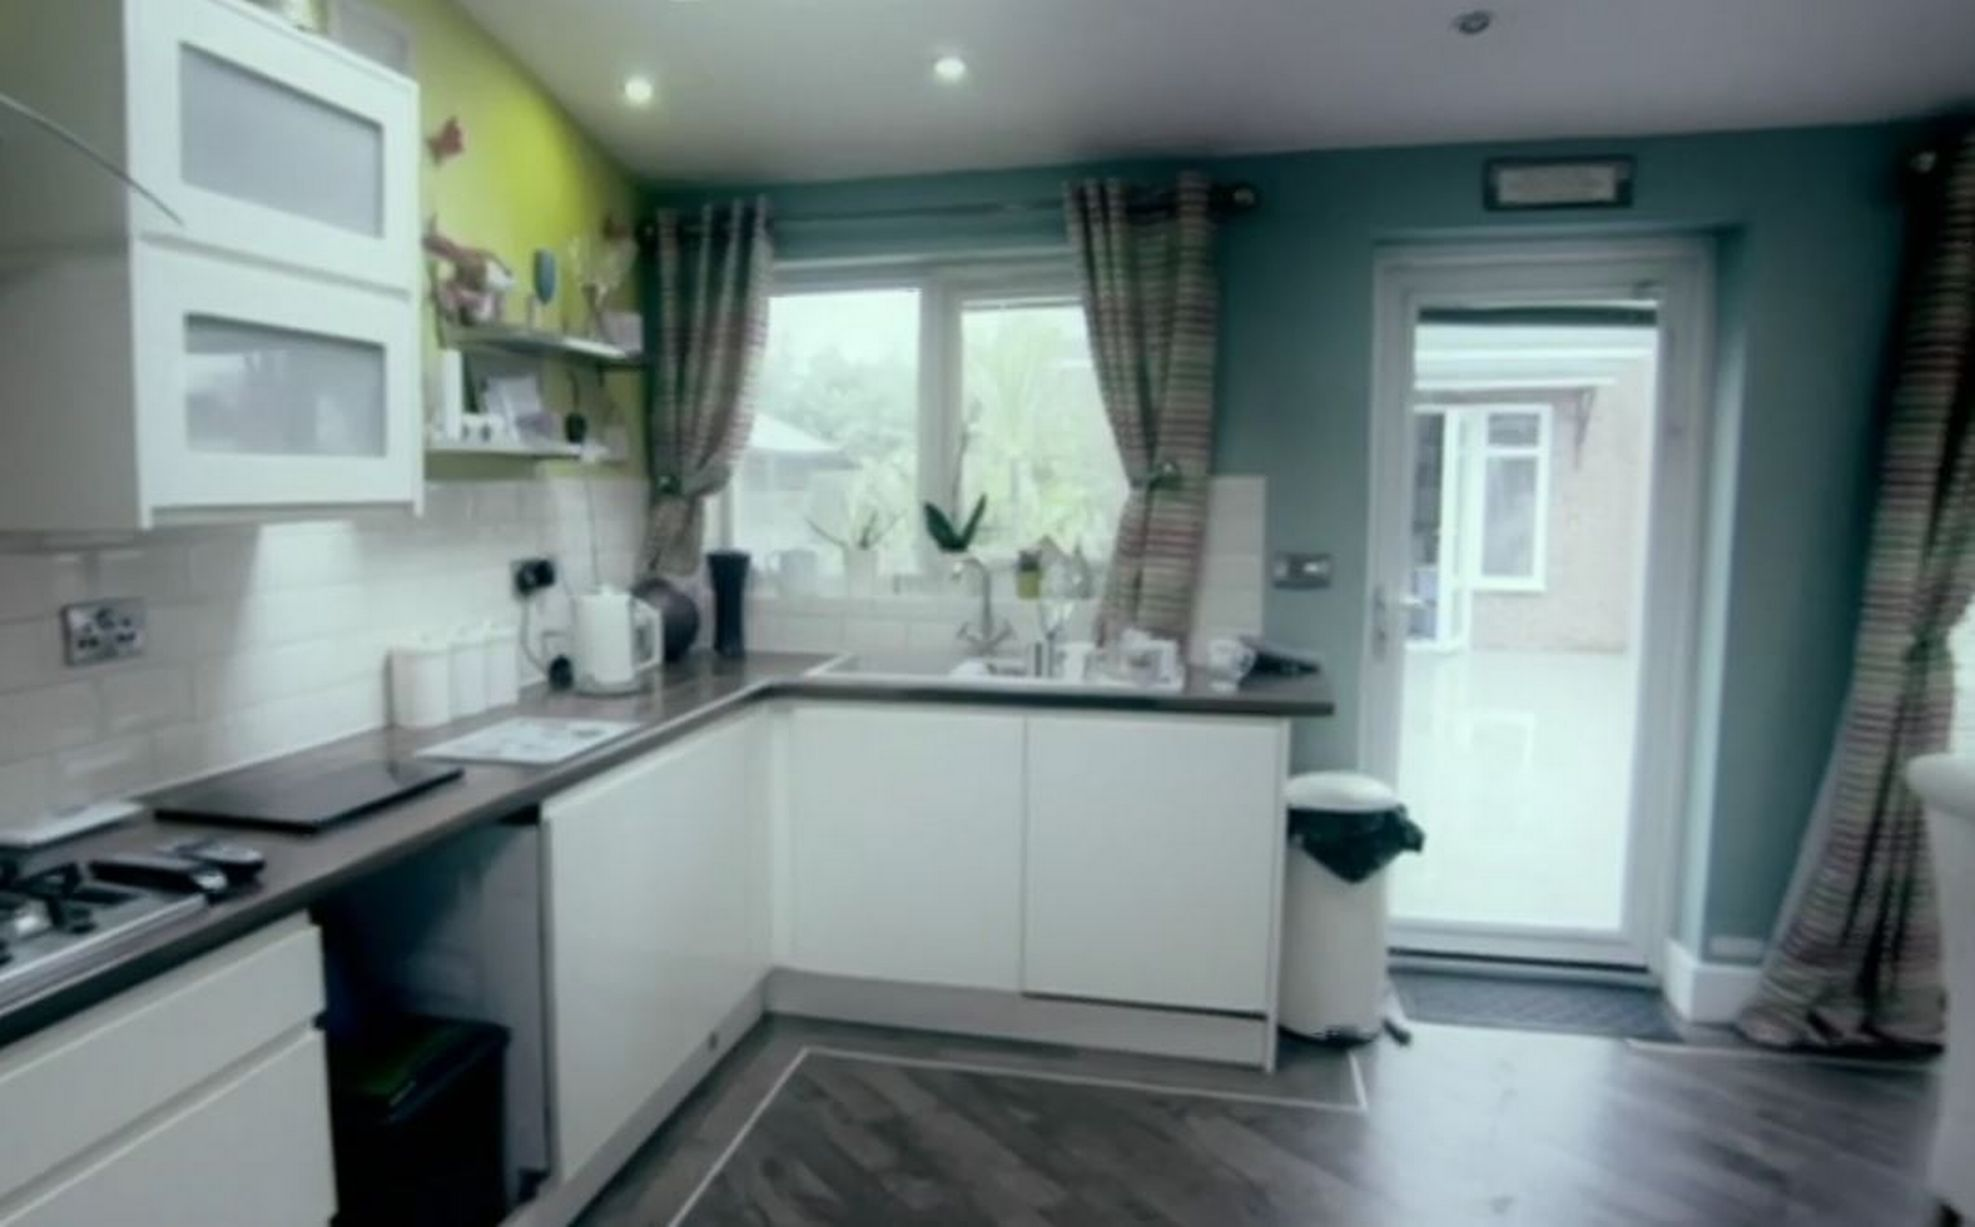 Diy Sos Kitchen Design Diy Sos Inside Darren S Hudson Home Before And After Hull Live